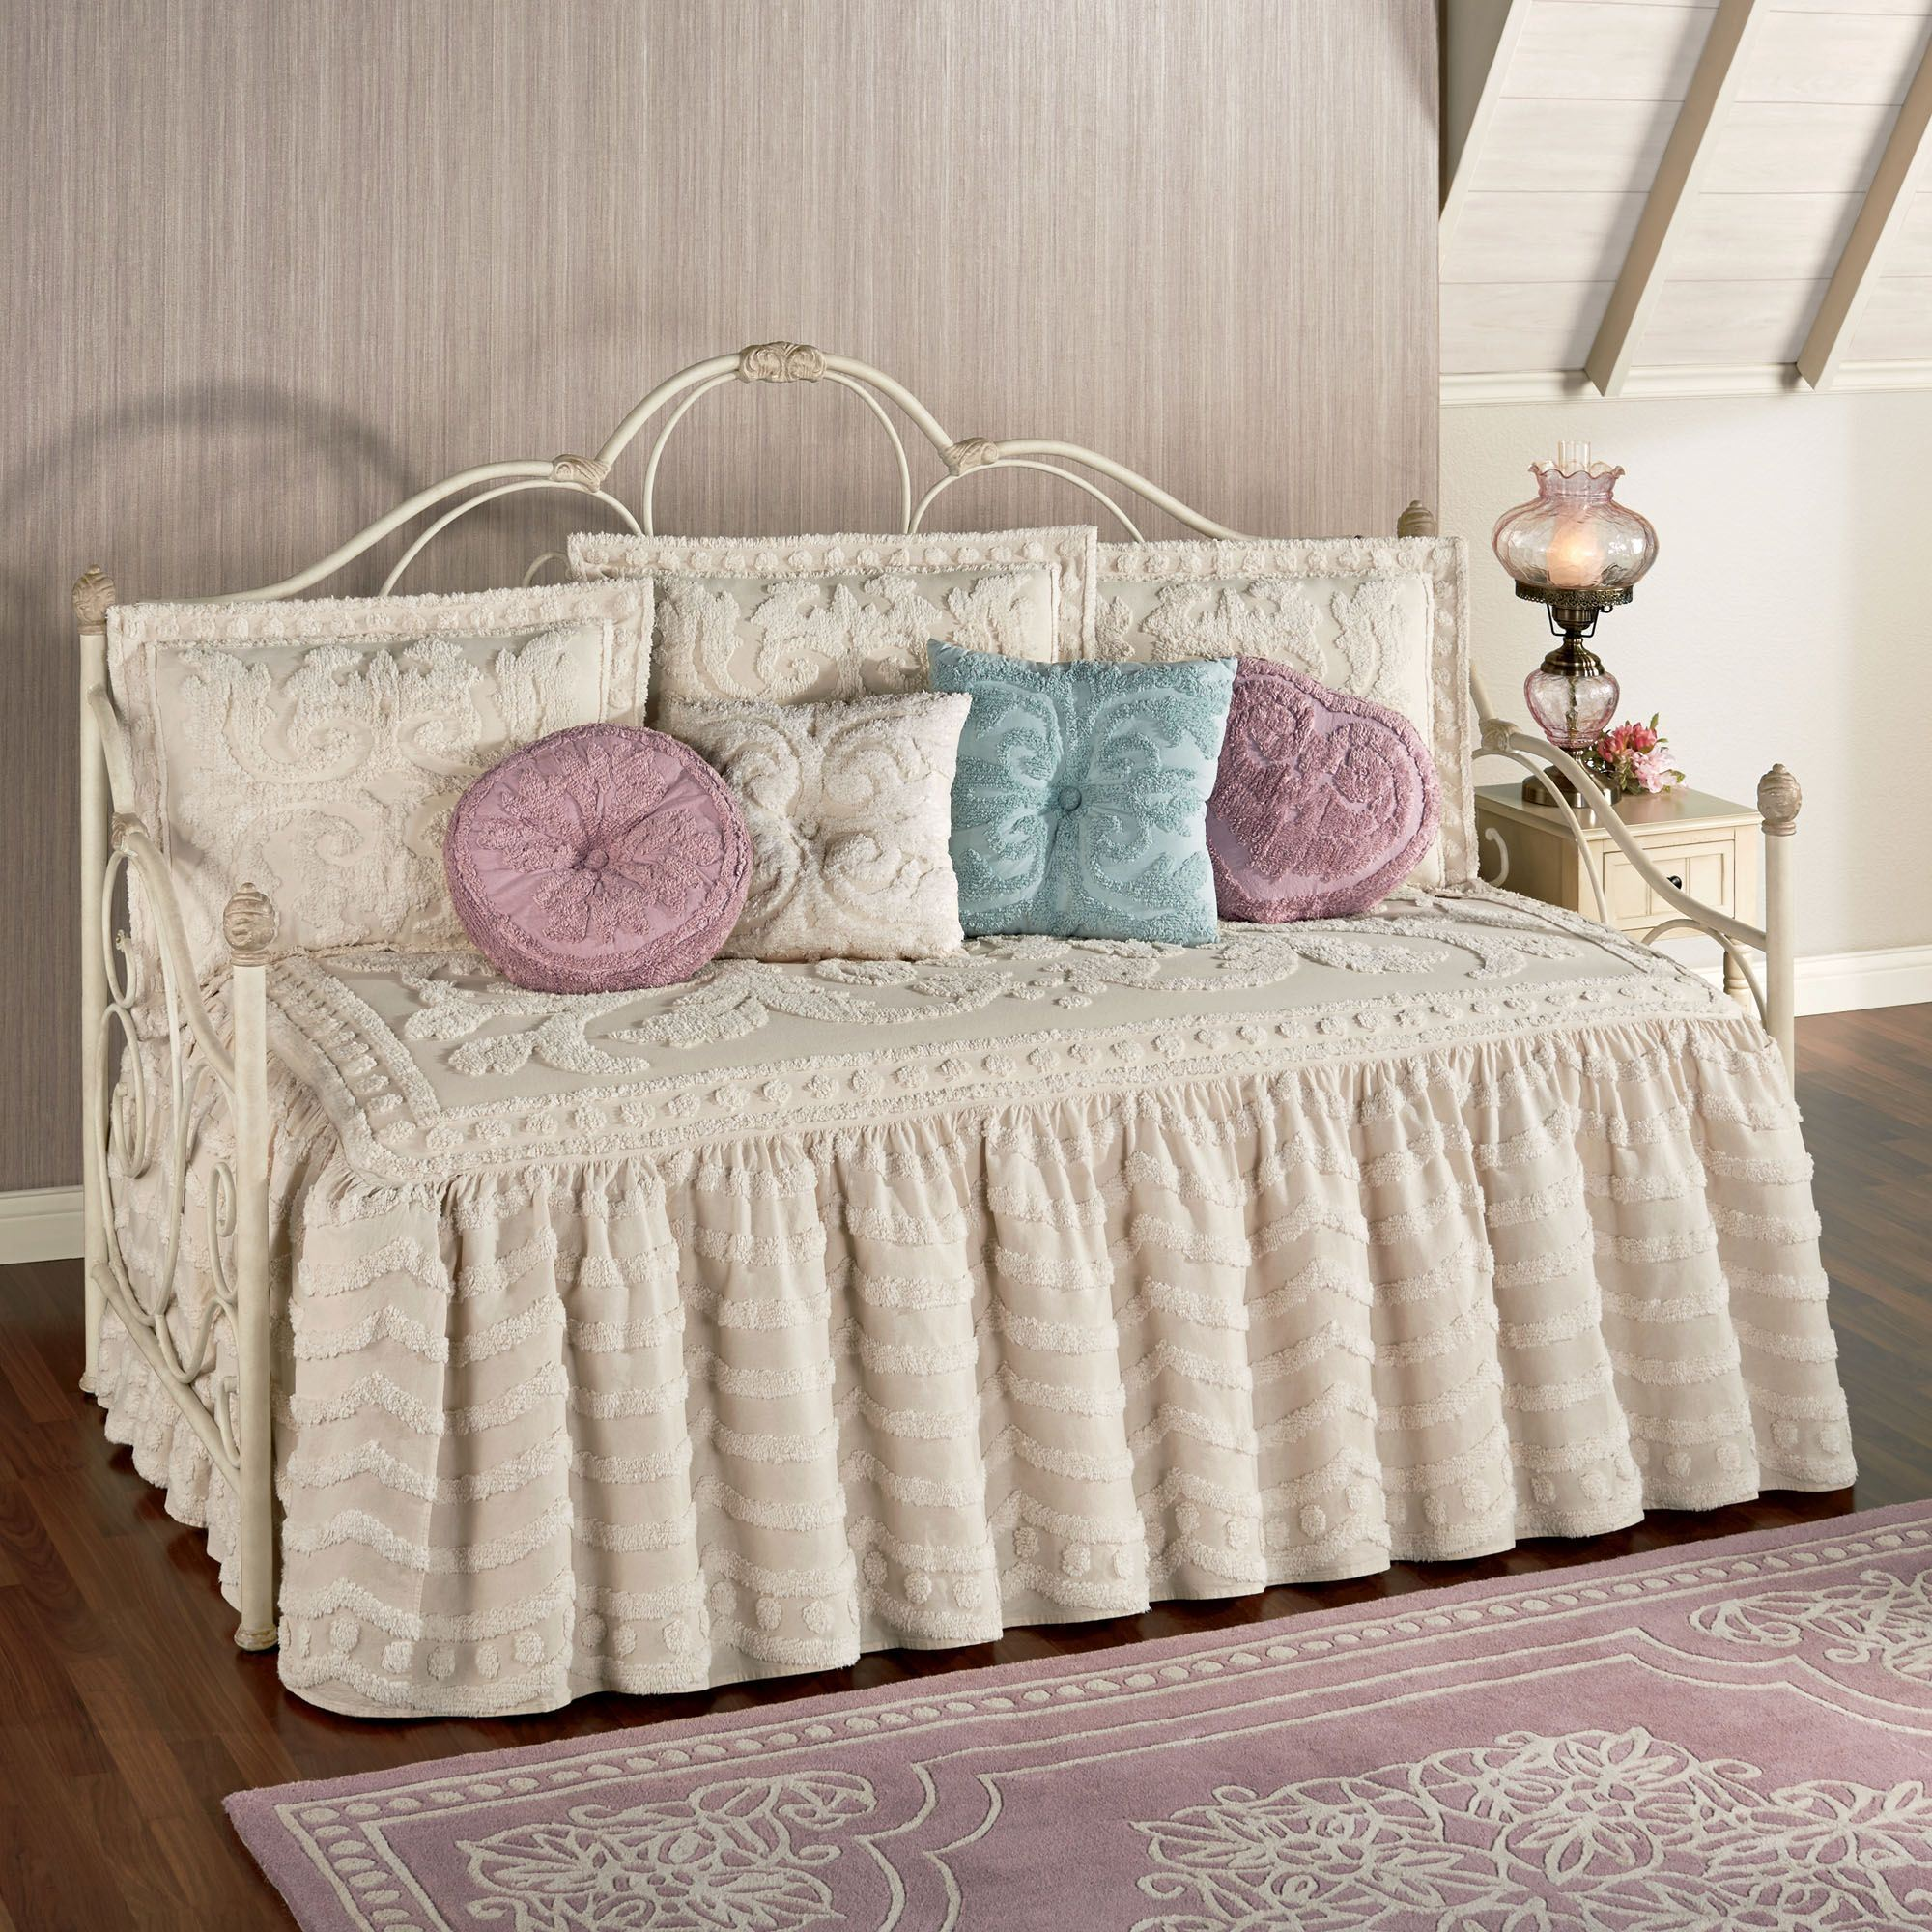 design quilt tips choosing lustwithalaugh daybed mural quilts